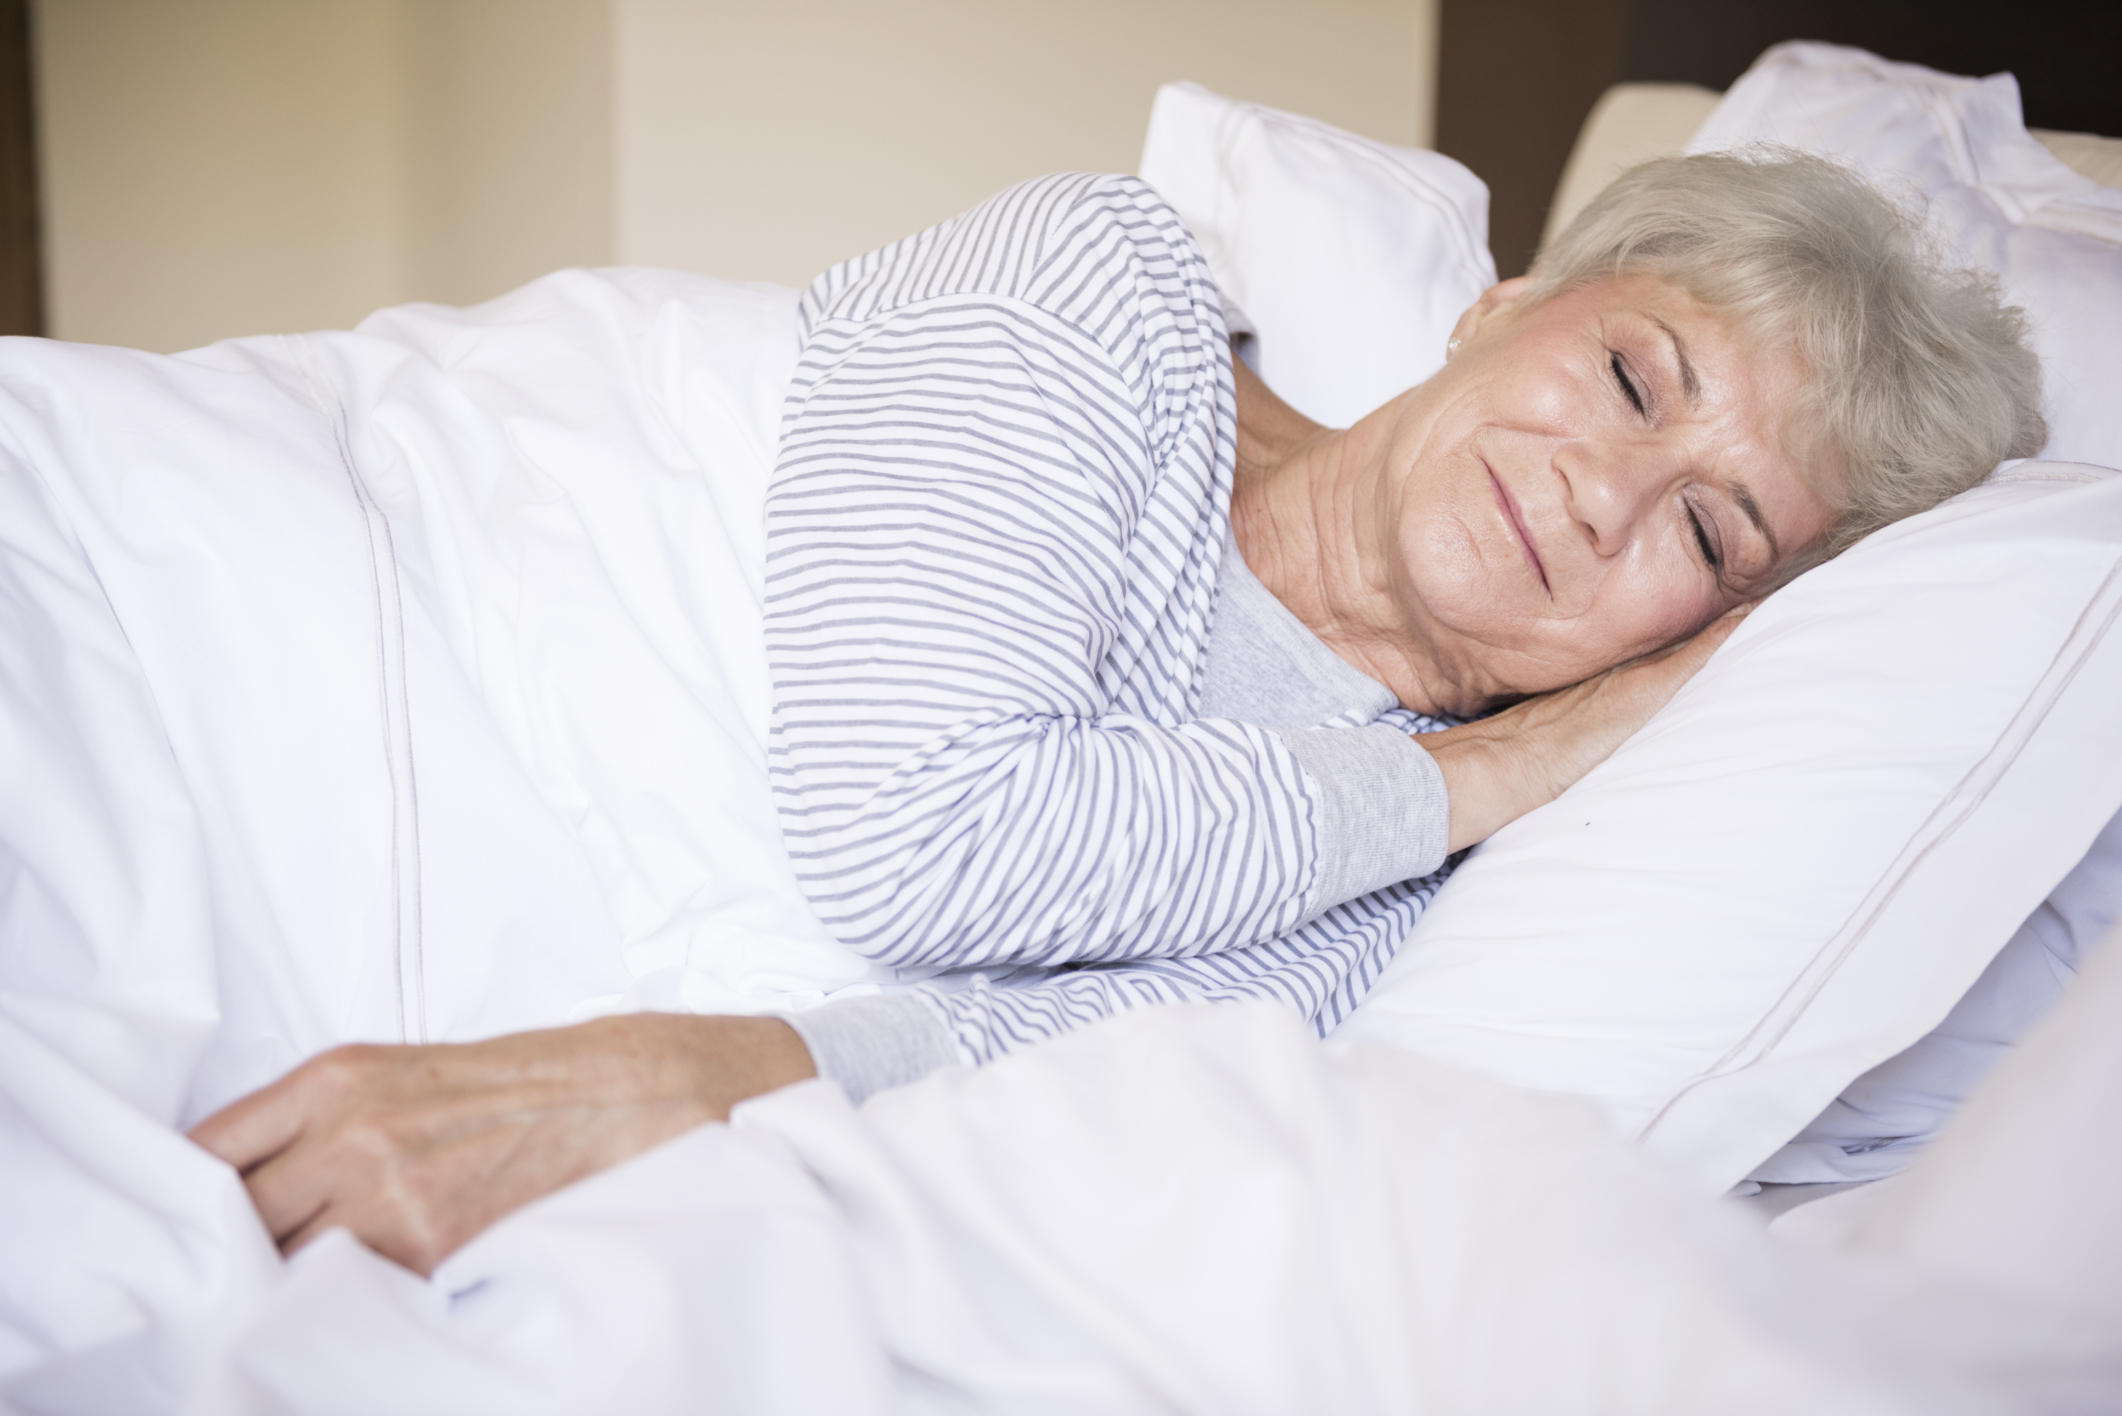 eHealth_Aug 6 2015_news _sleeping on side reduces alzheimers risk_yaneff